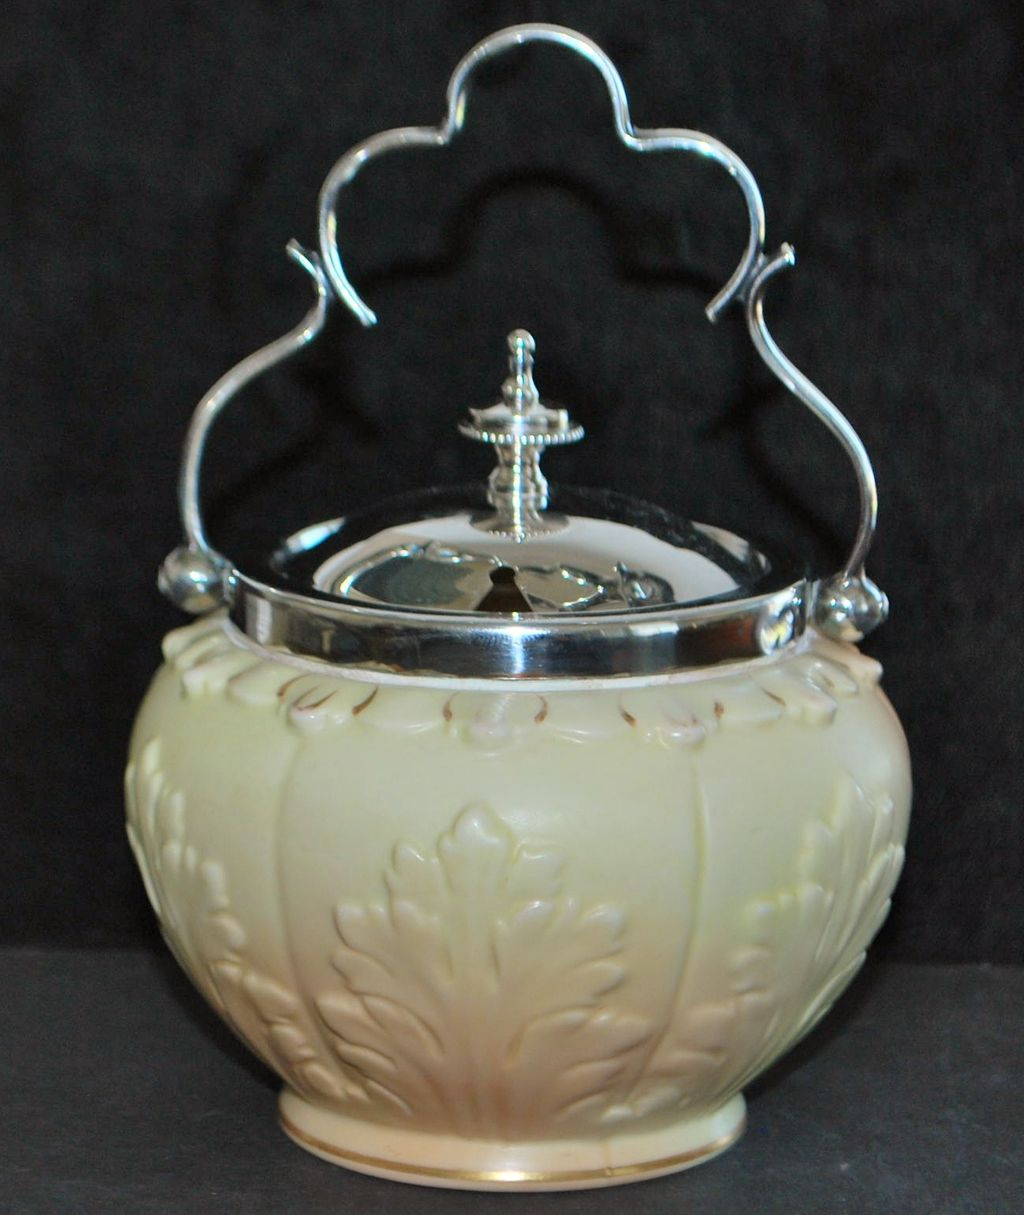 English Worcester Locke & Co. Preserve Pot, c. 1900